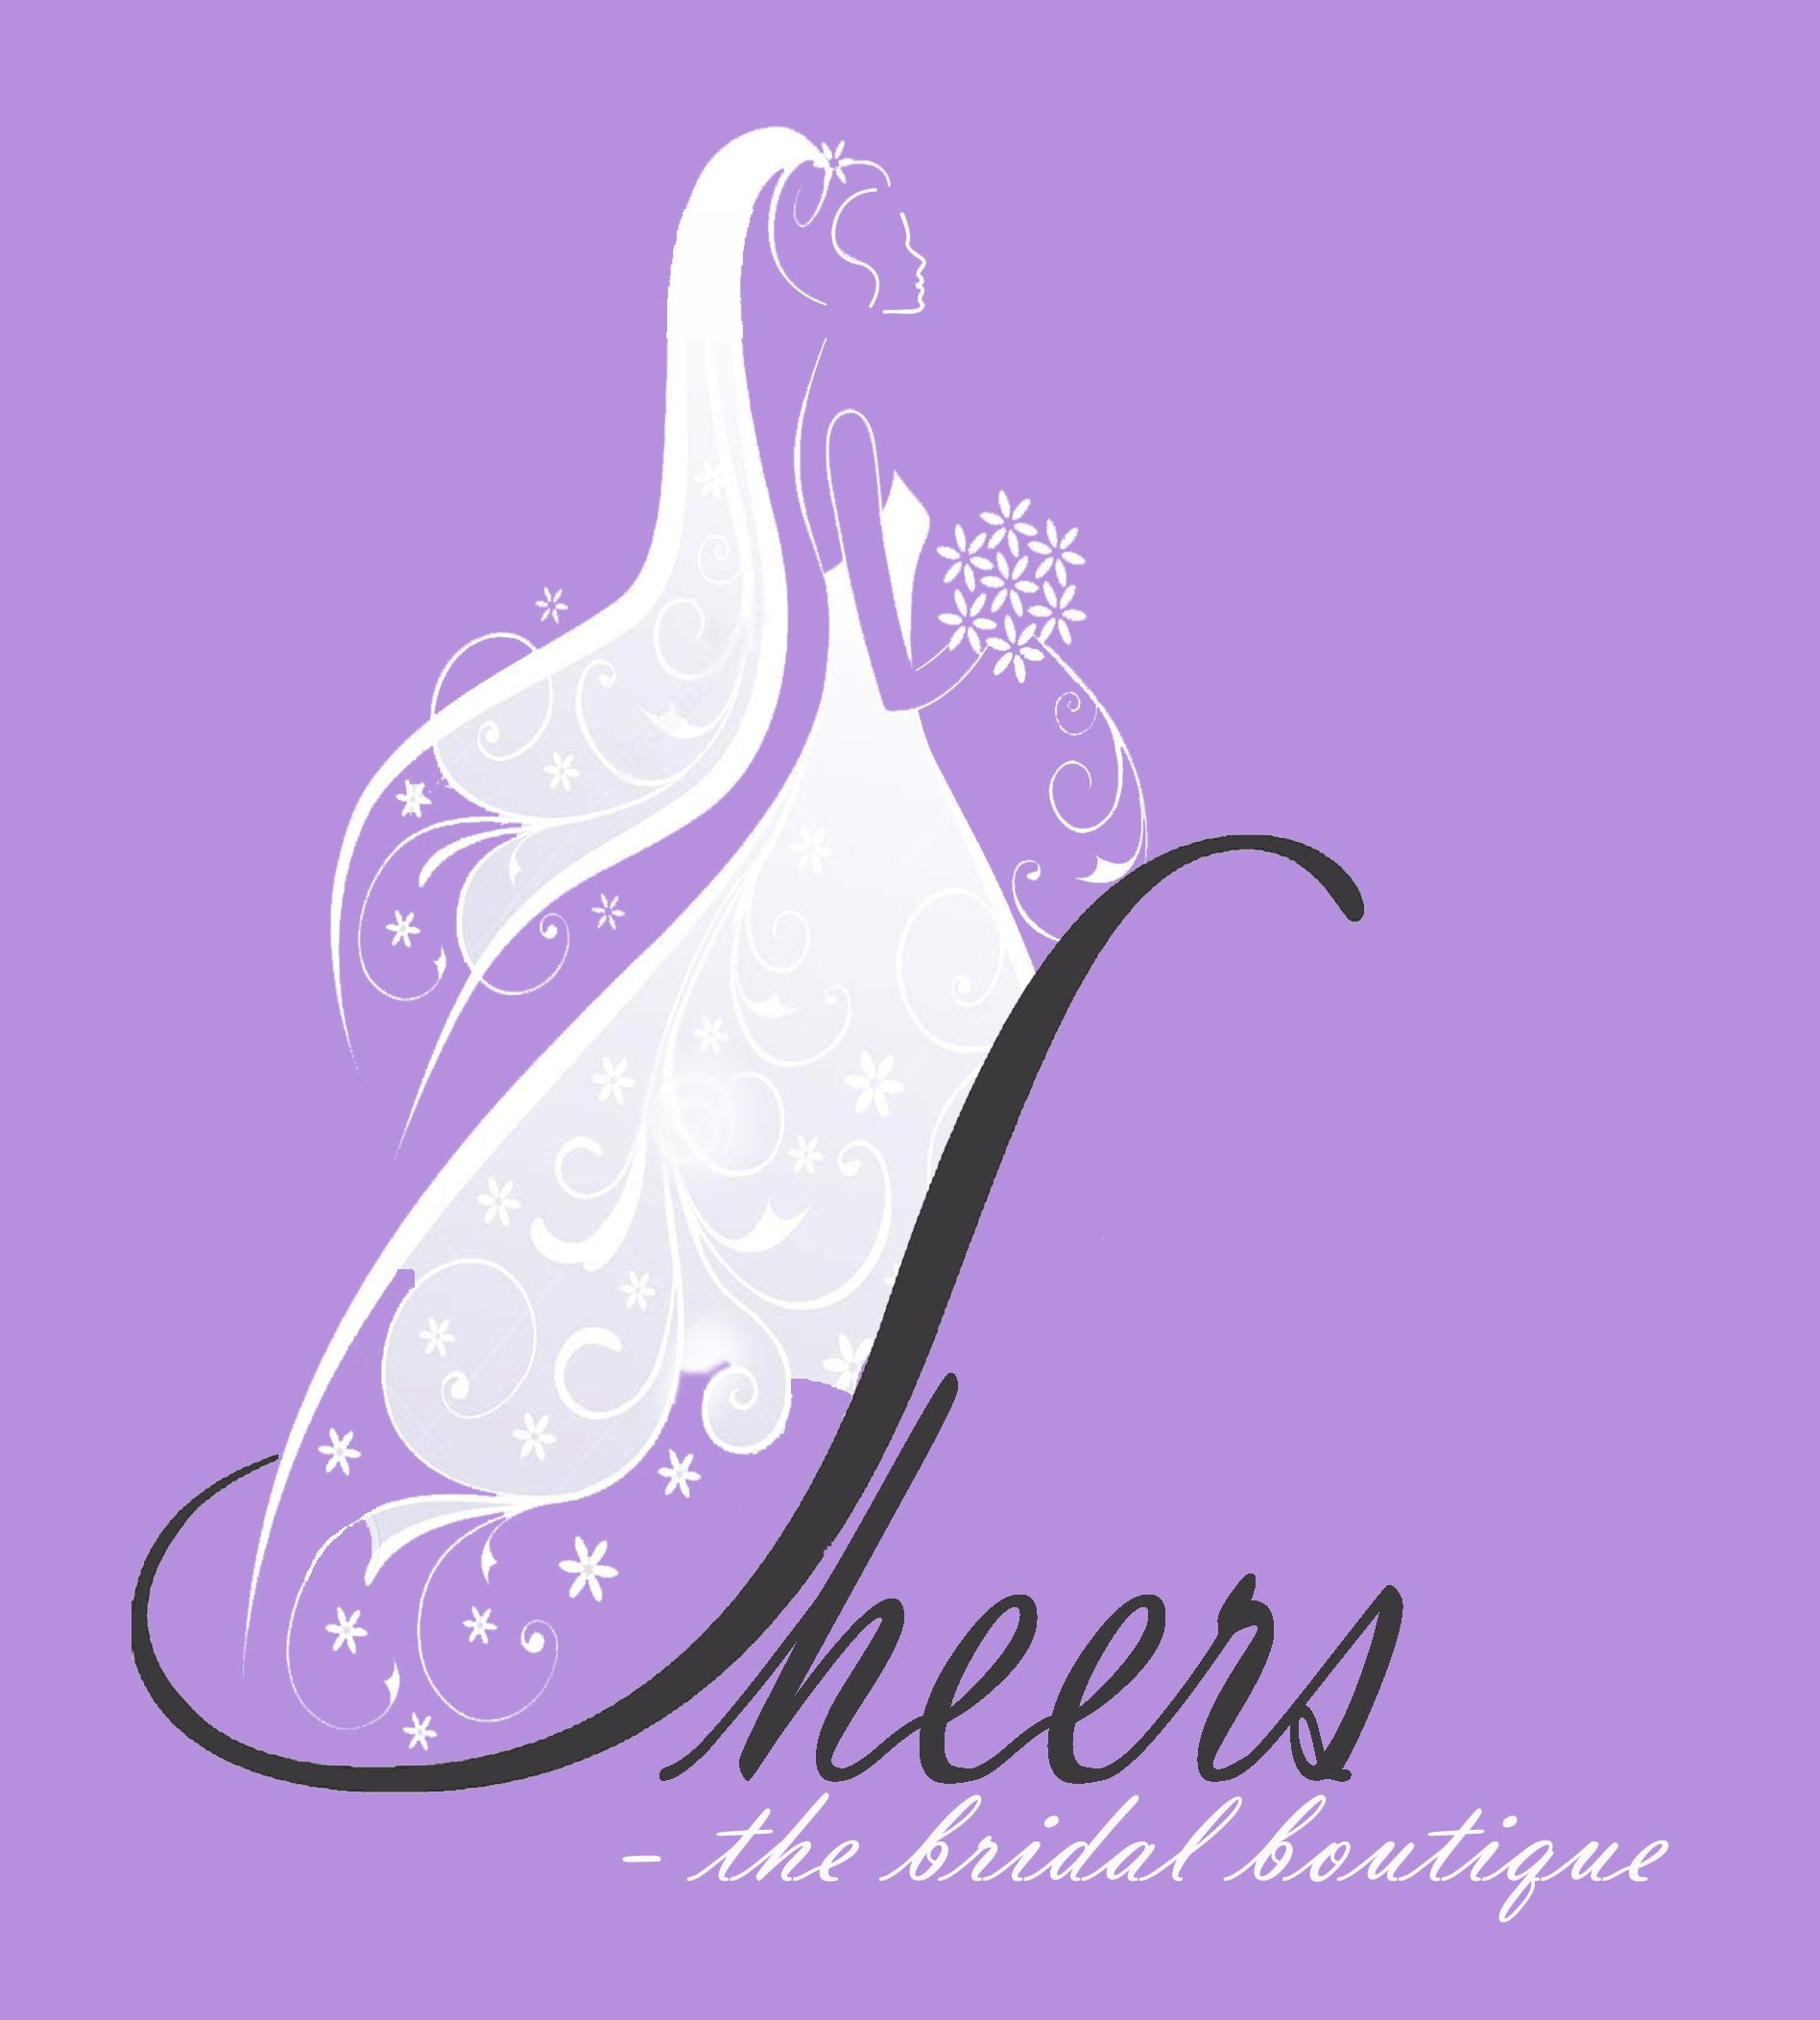 Sheers Bridal Boutique - 9003118809